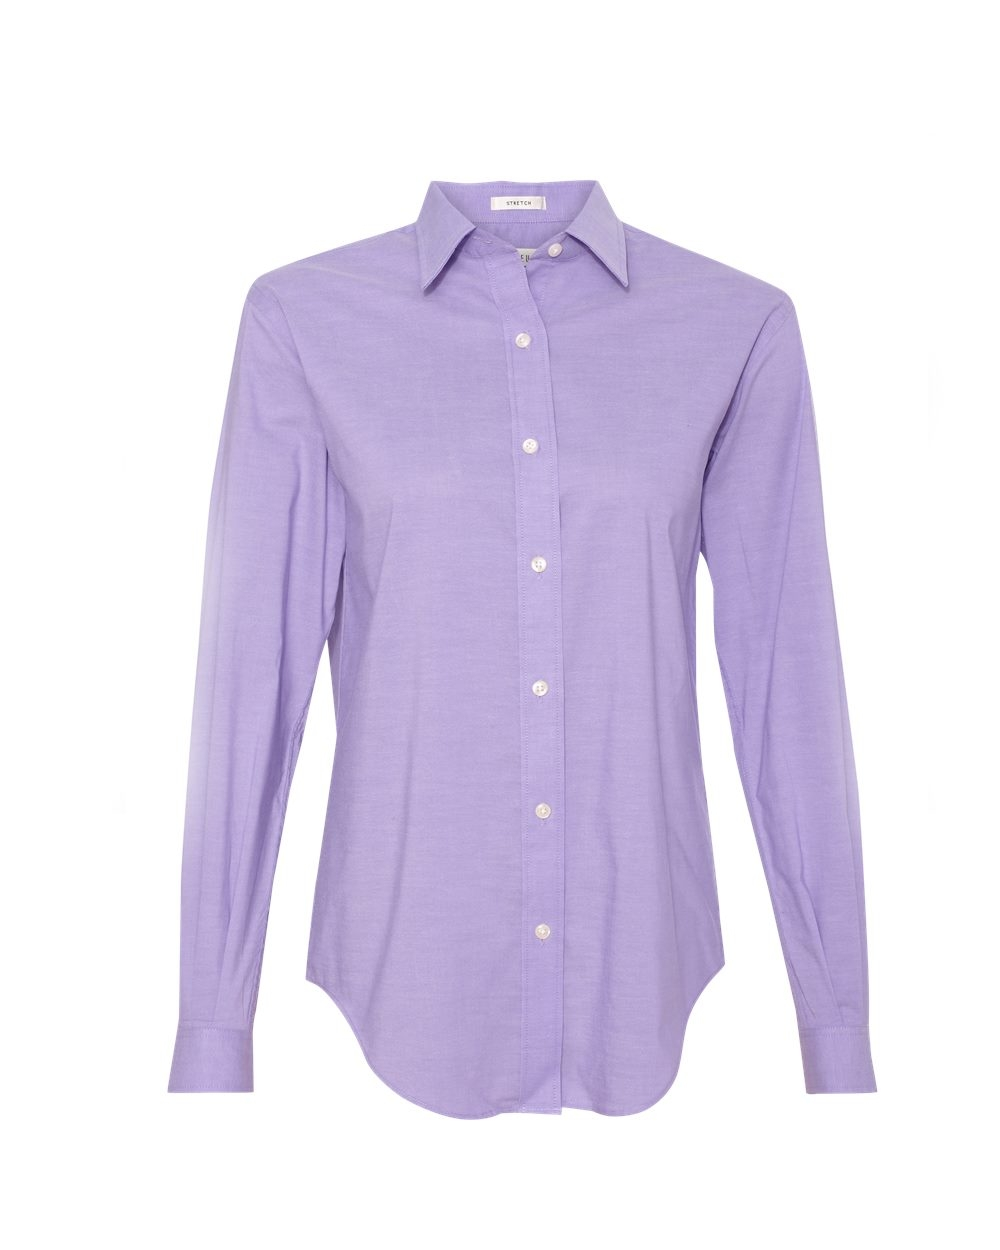 Van Heusen - 13v0238, Van Heusen - Ladies' Stretch Pinpoint Spread Collar Shirt - Logo Masters International